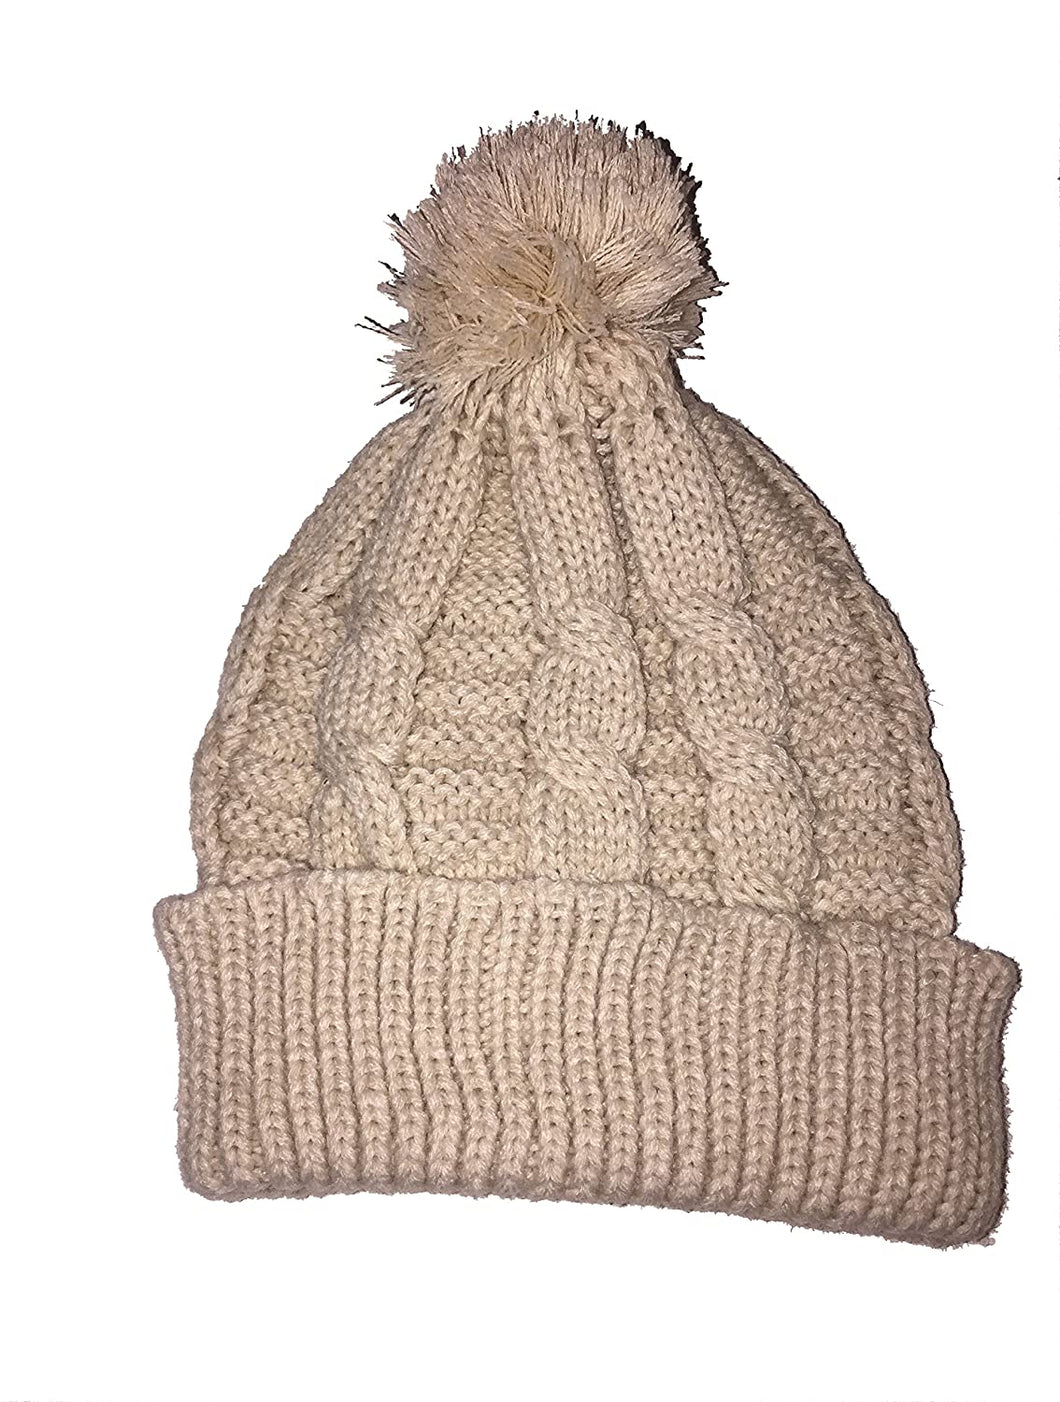 Pamper Yourself Now Unisex Cream Winter hat/Beanie with Bobble